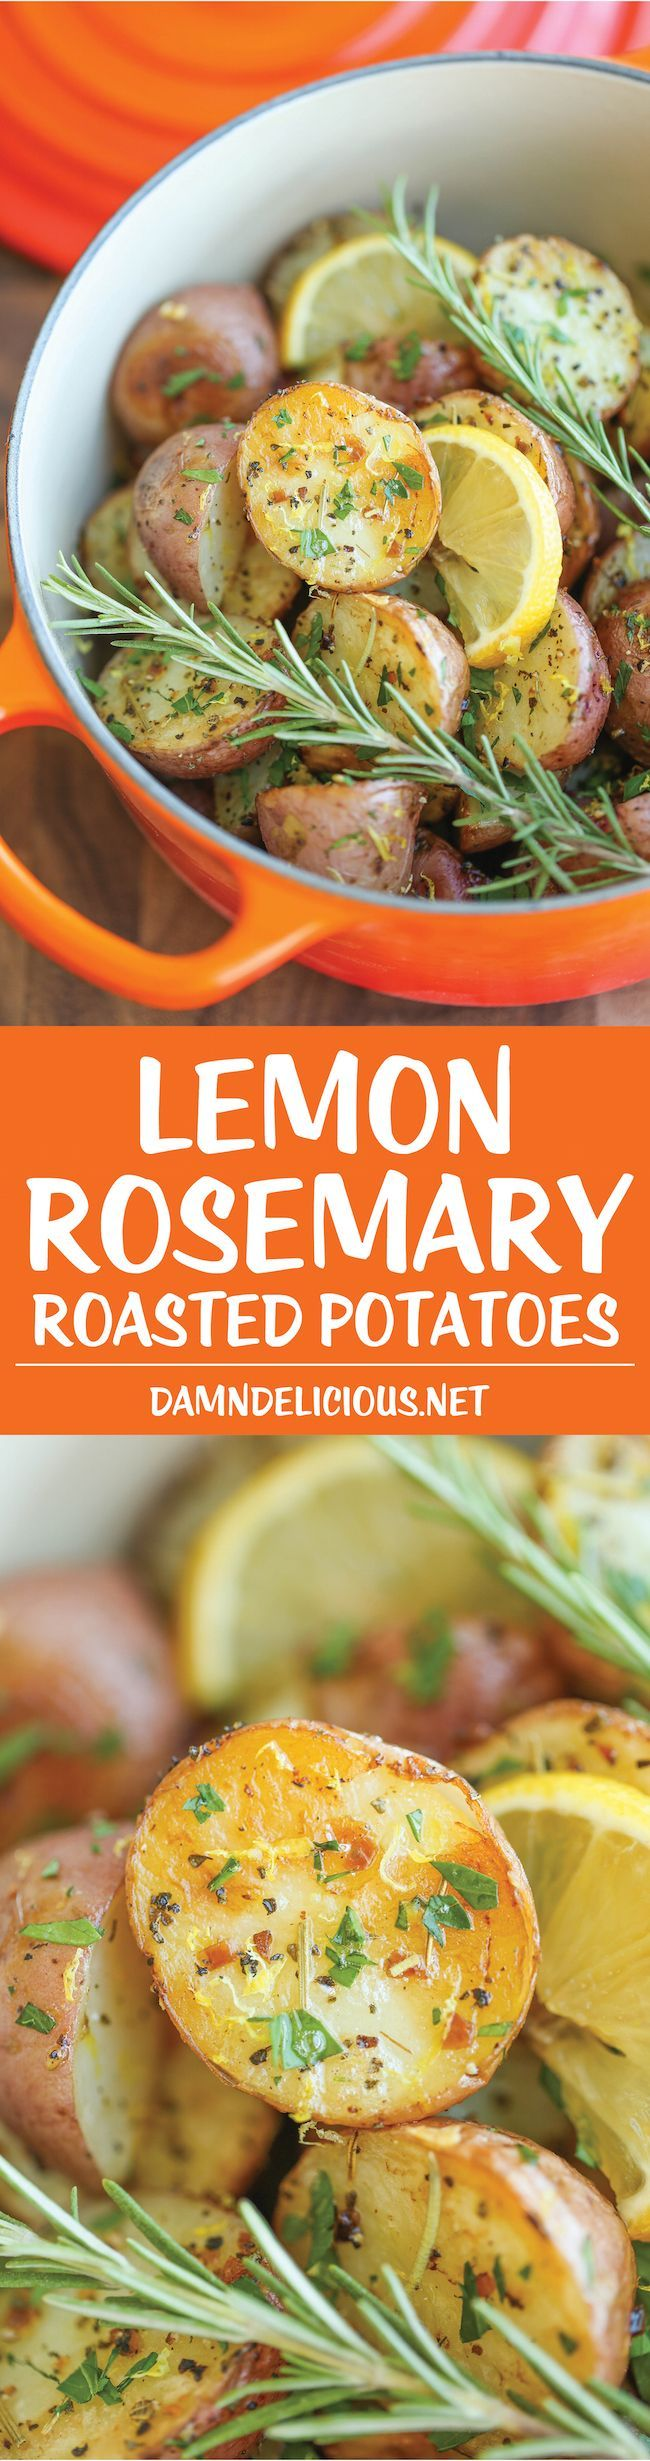 /// Lemon Rosemary Roasted Potatoes - Lemon and rosemary come together beautifully in this quick and easy go-to side dish, perfect for every meal!